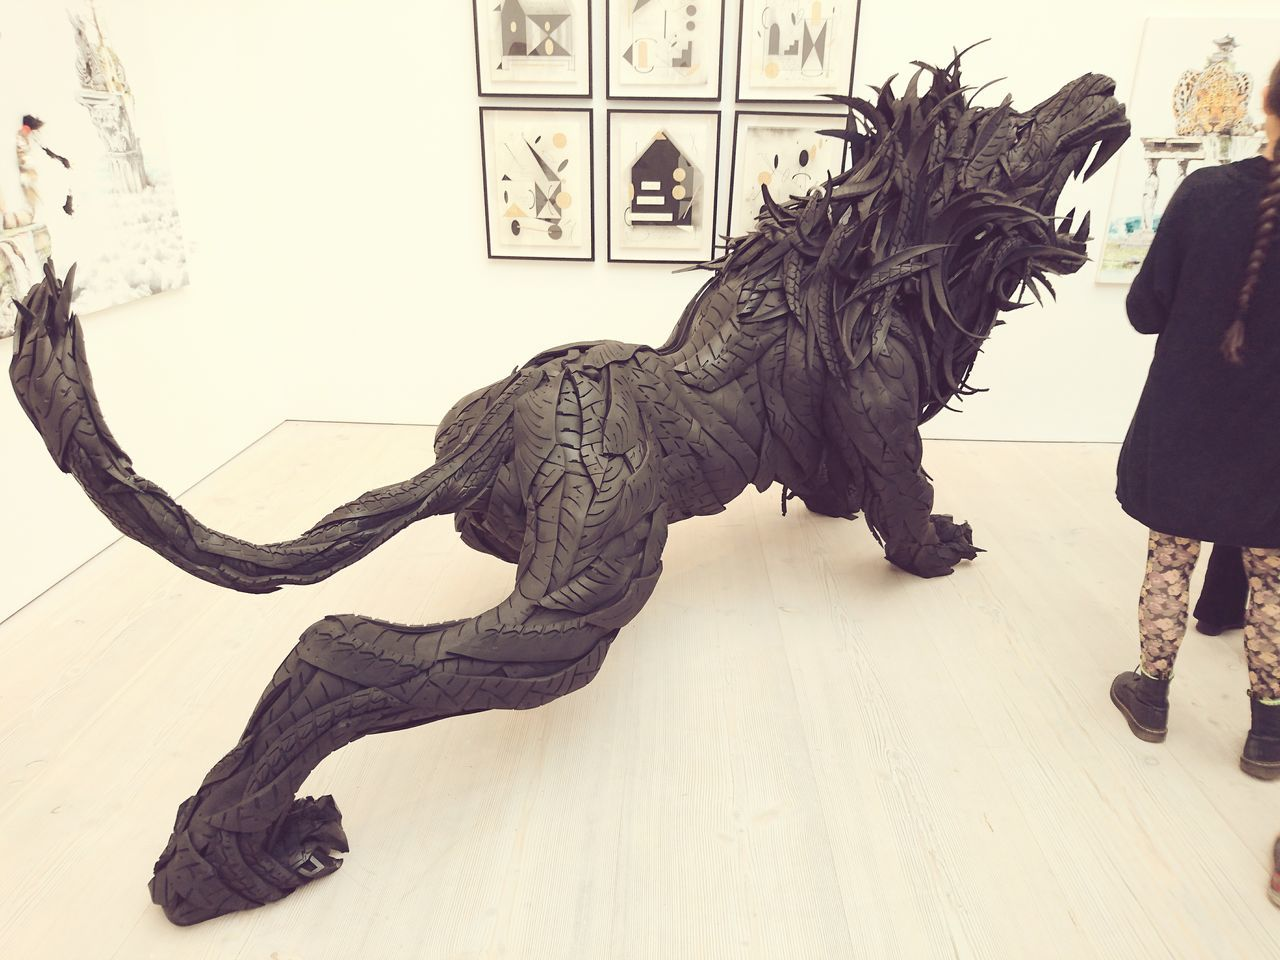 Amazing Sclupture Tyres Lion Gallery Saatchi Gallery Art Creativity Recycled Materials